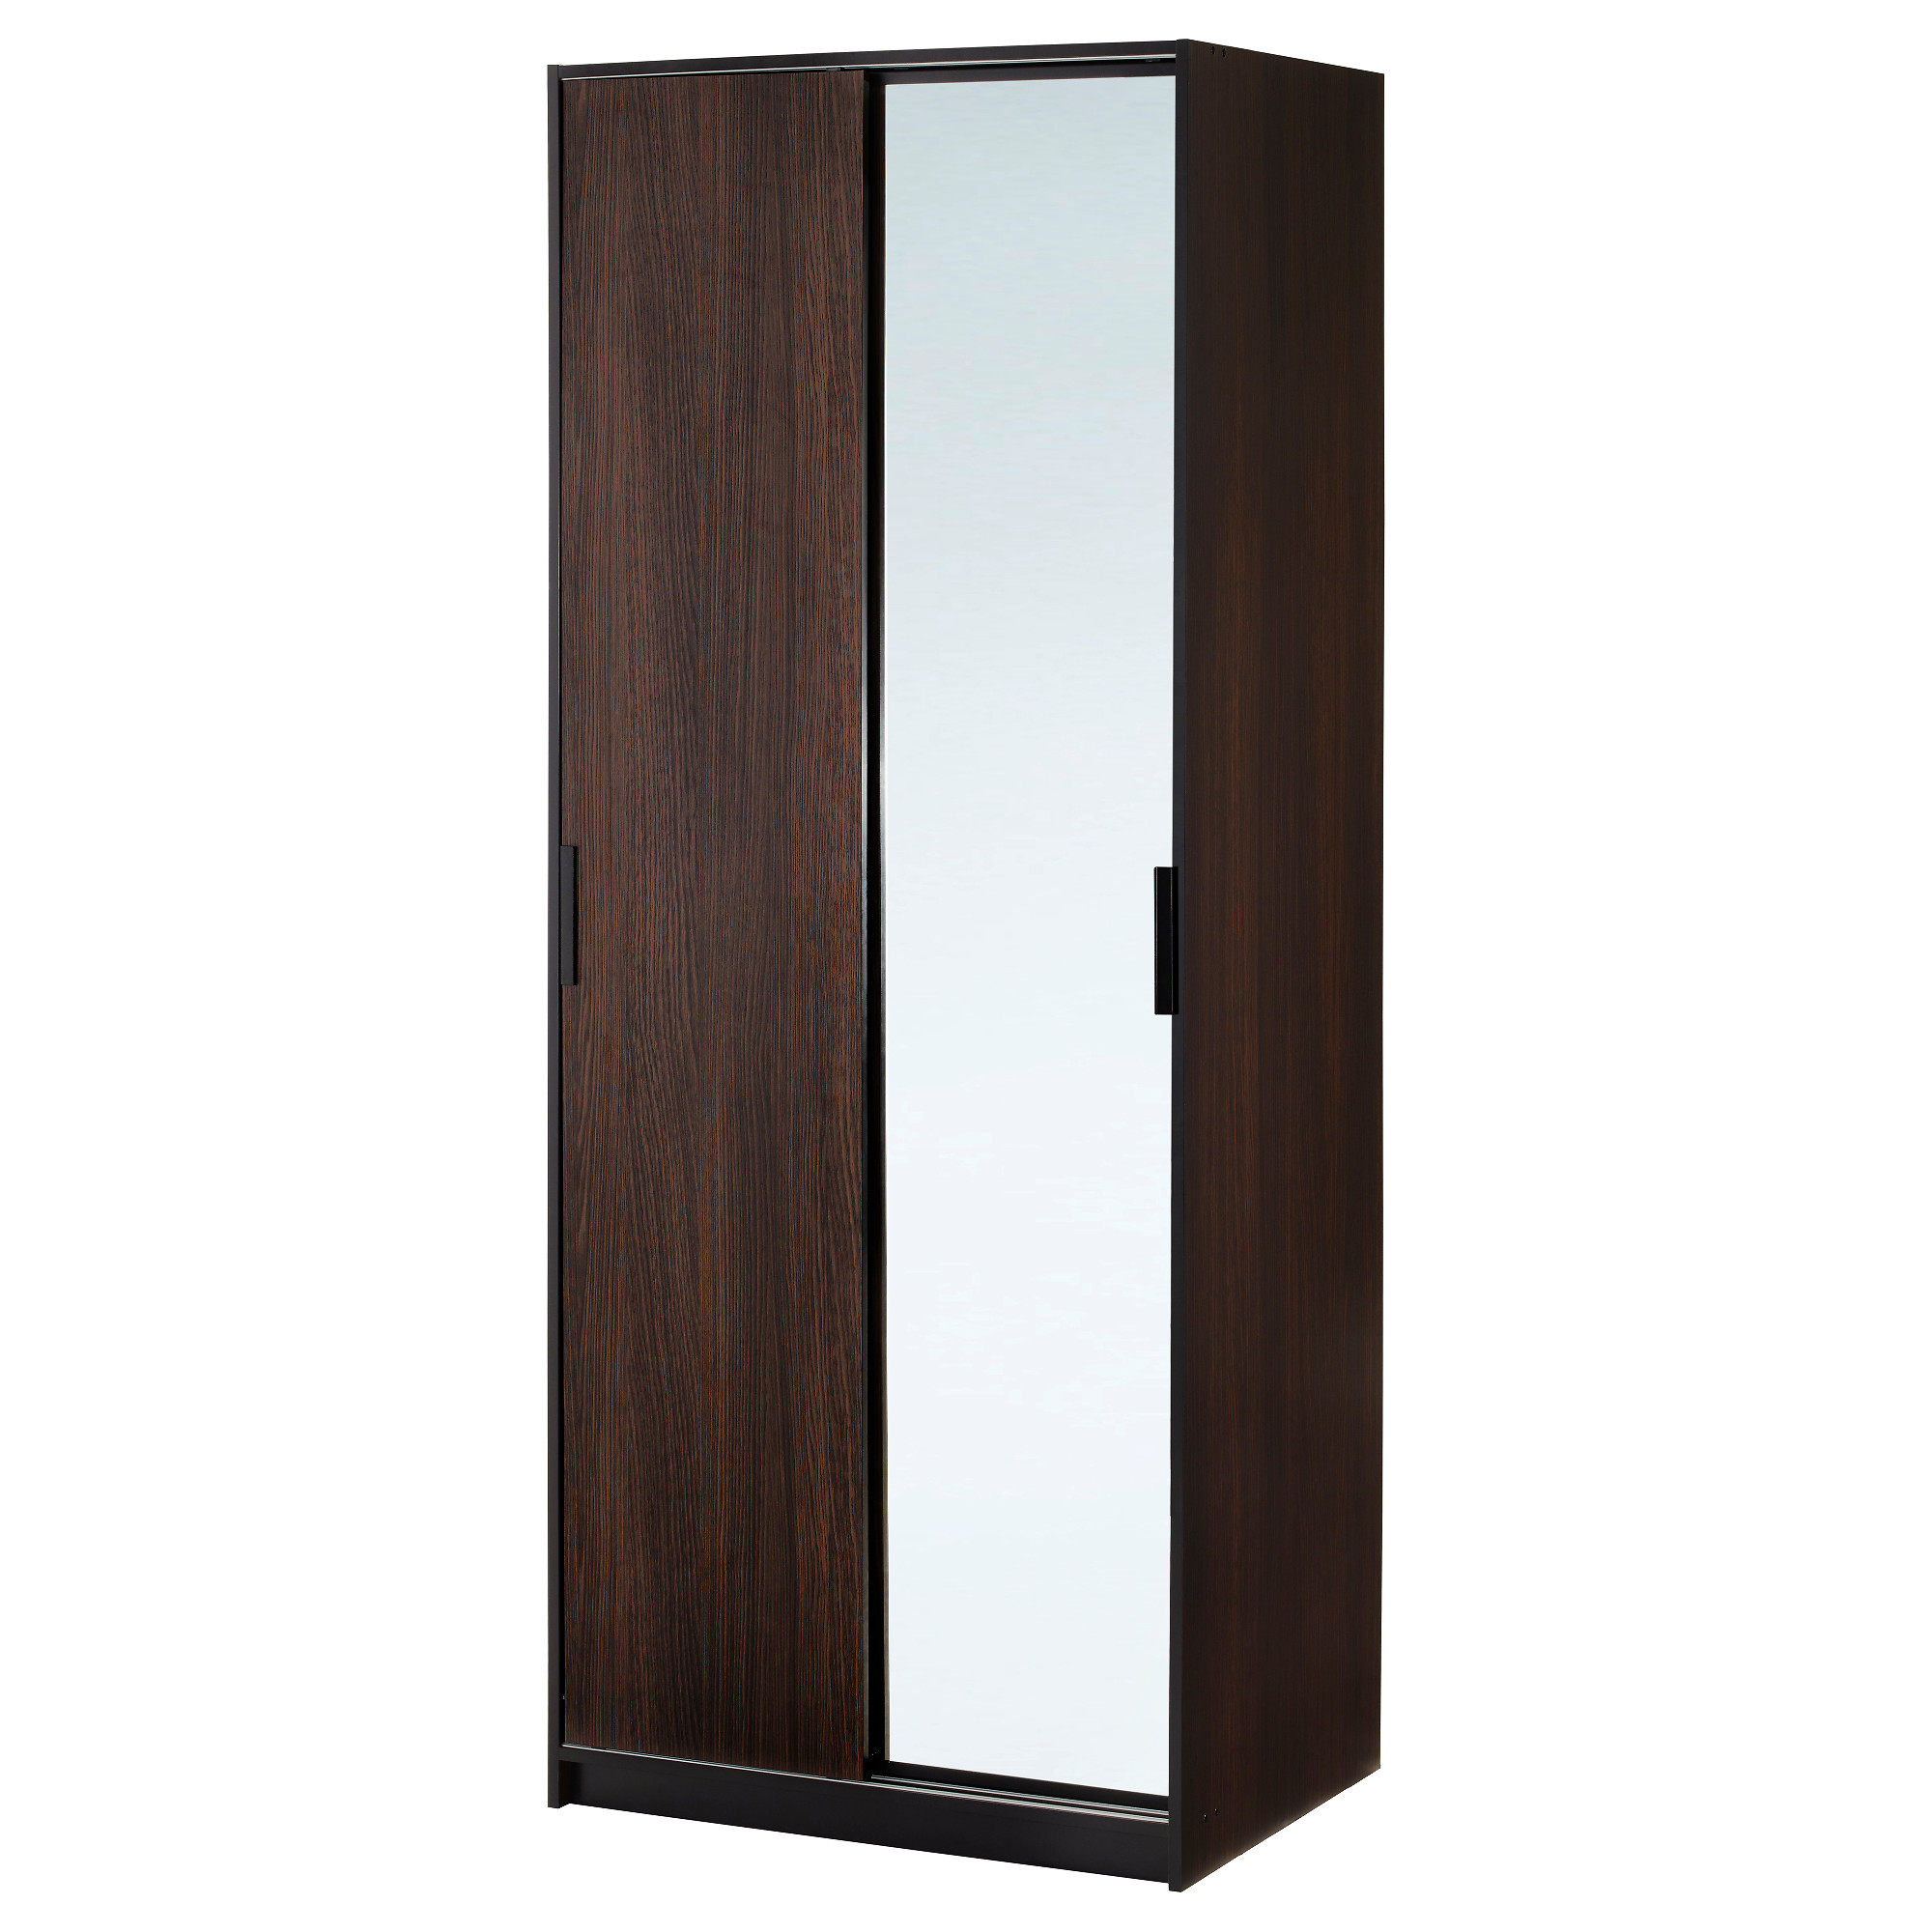 Single Door Armoire | Narrow Armoire | Cheap Wardrobe Closet